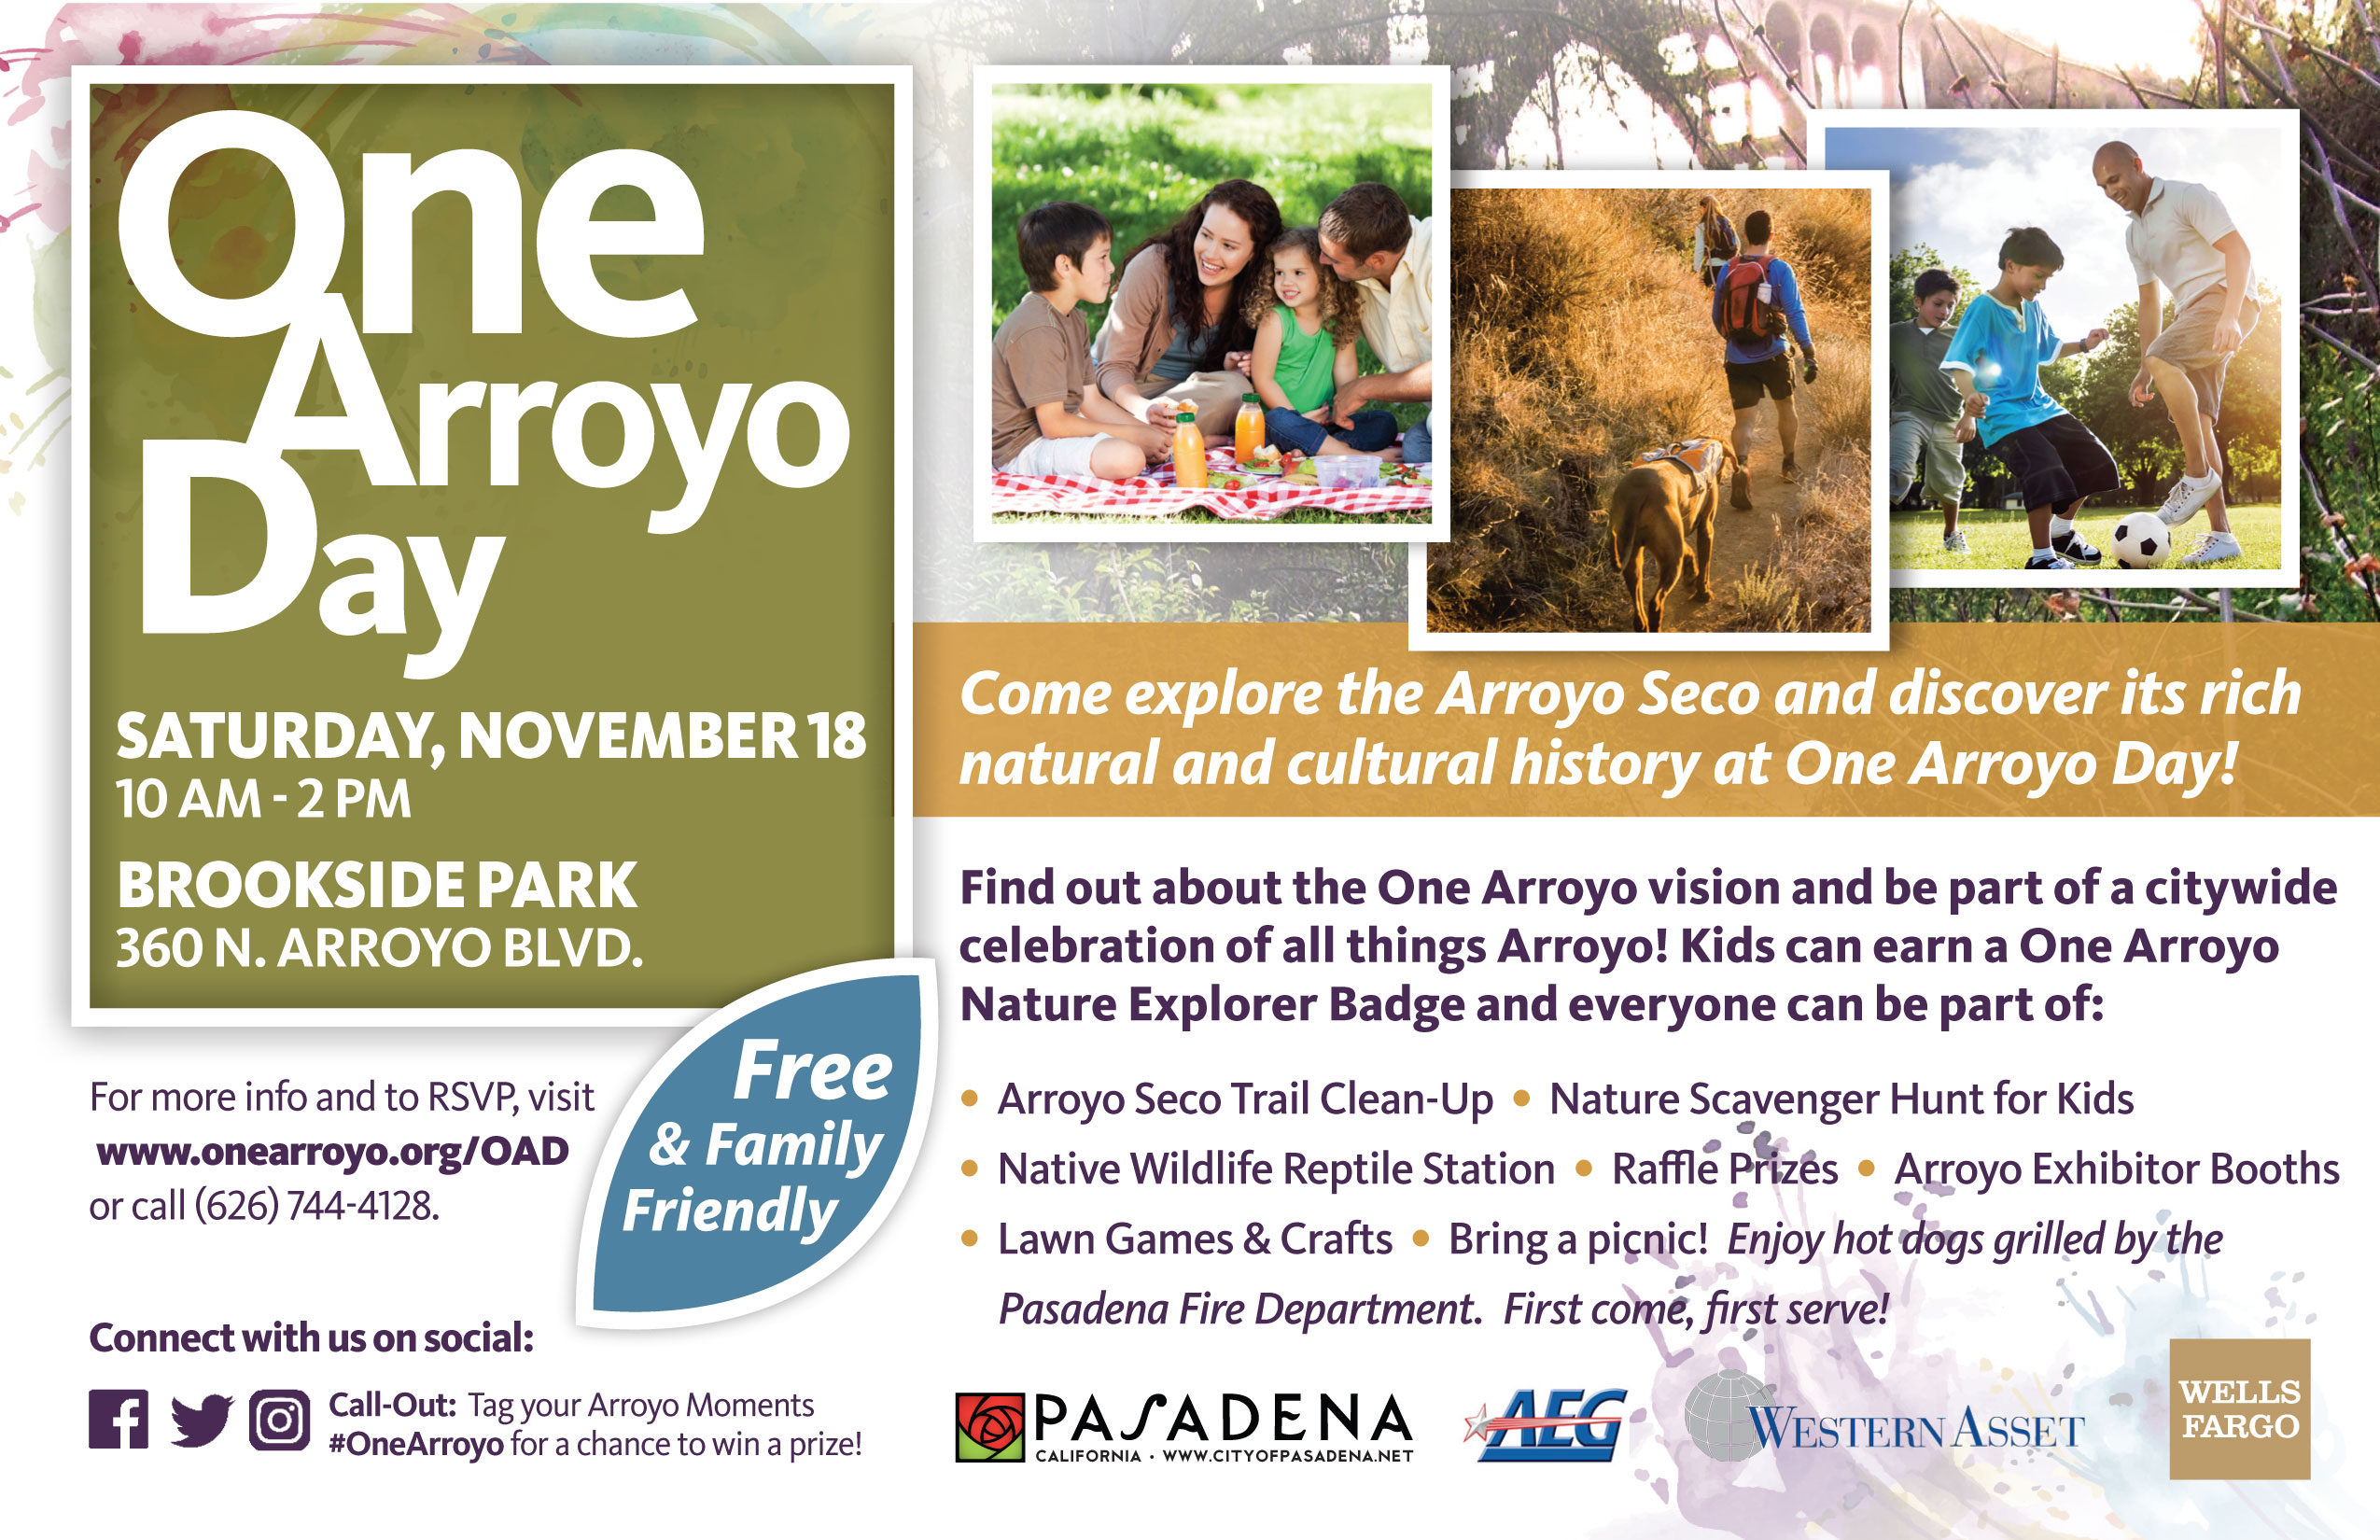 One Arroyo Day Flyer - November 18, 2017